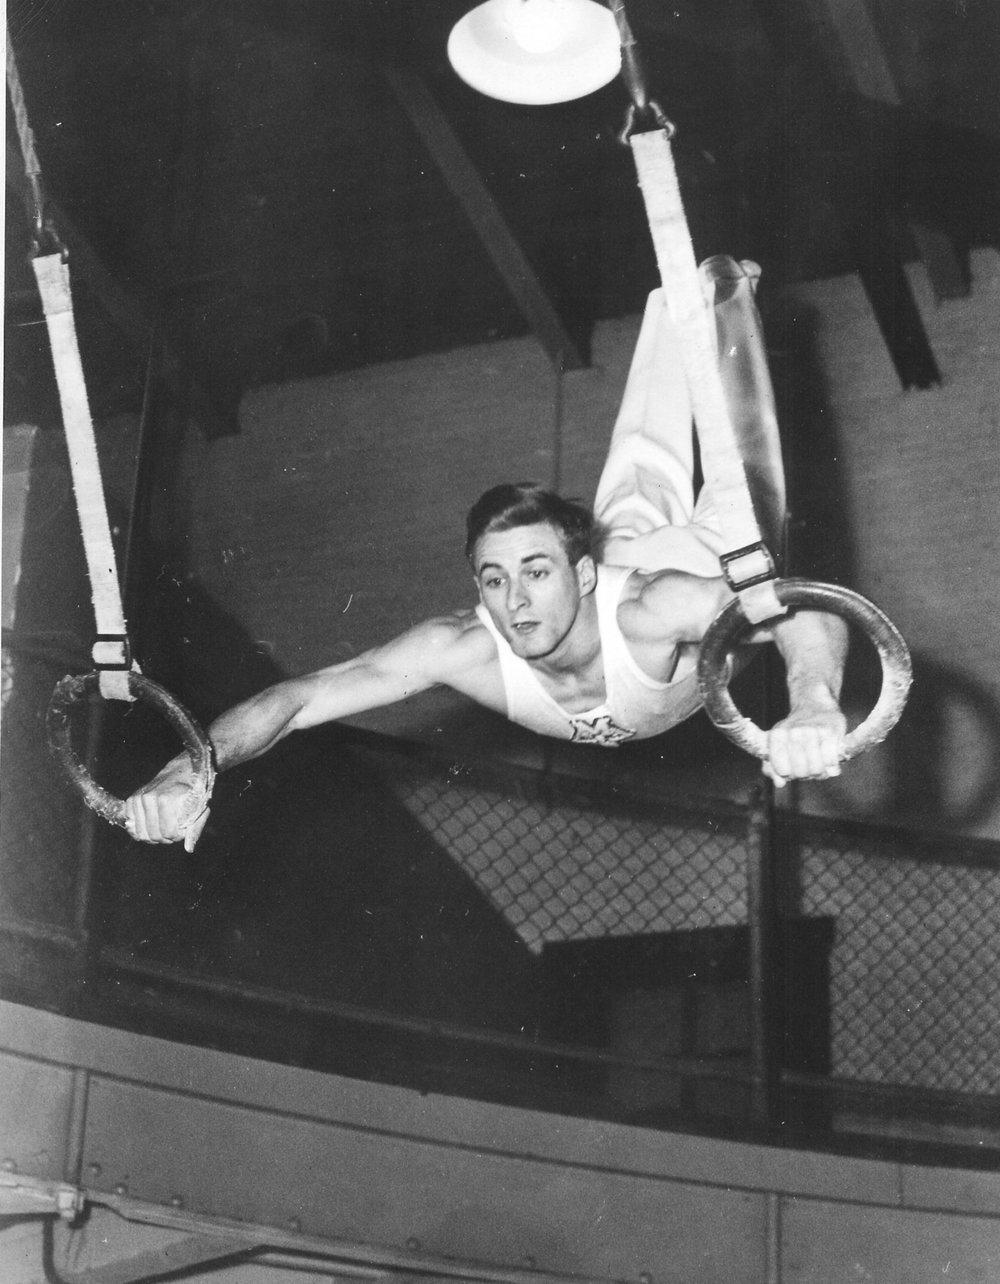 Al Kuckhoff on the Flying Rings (1950)